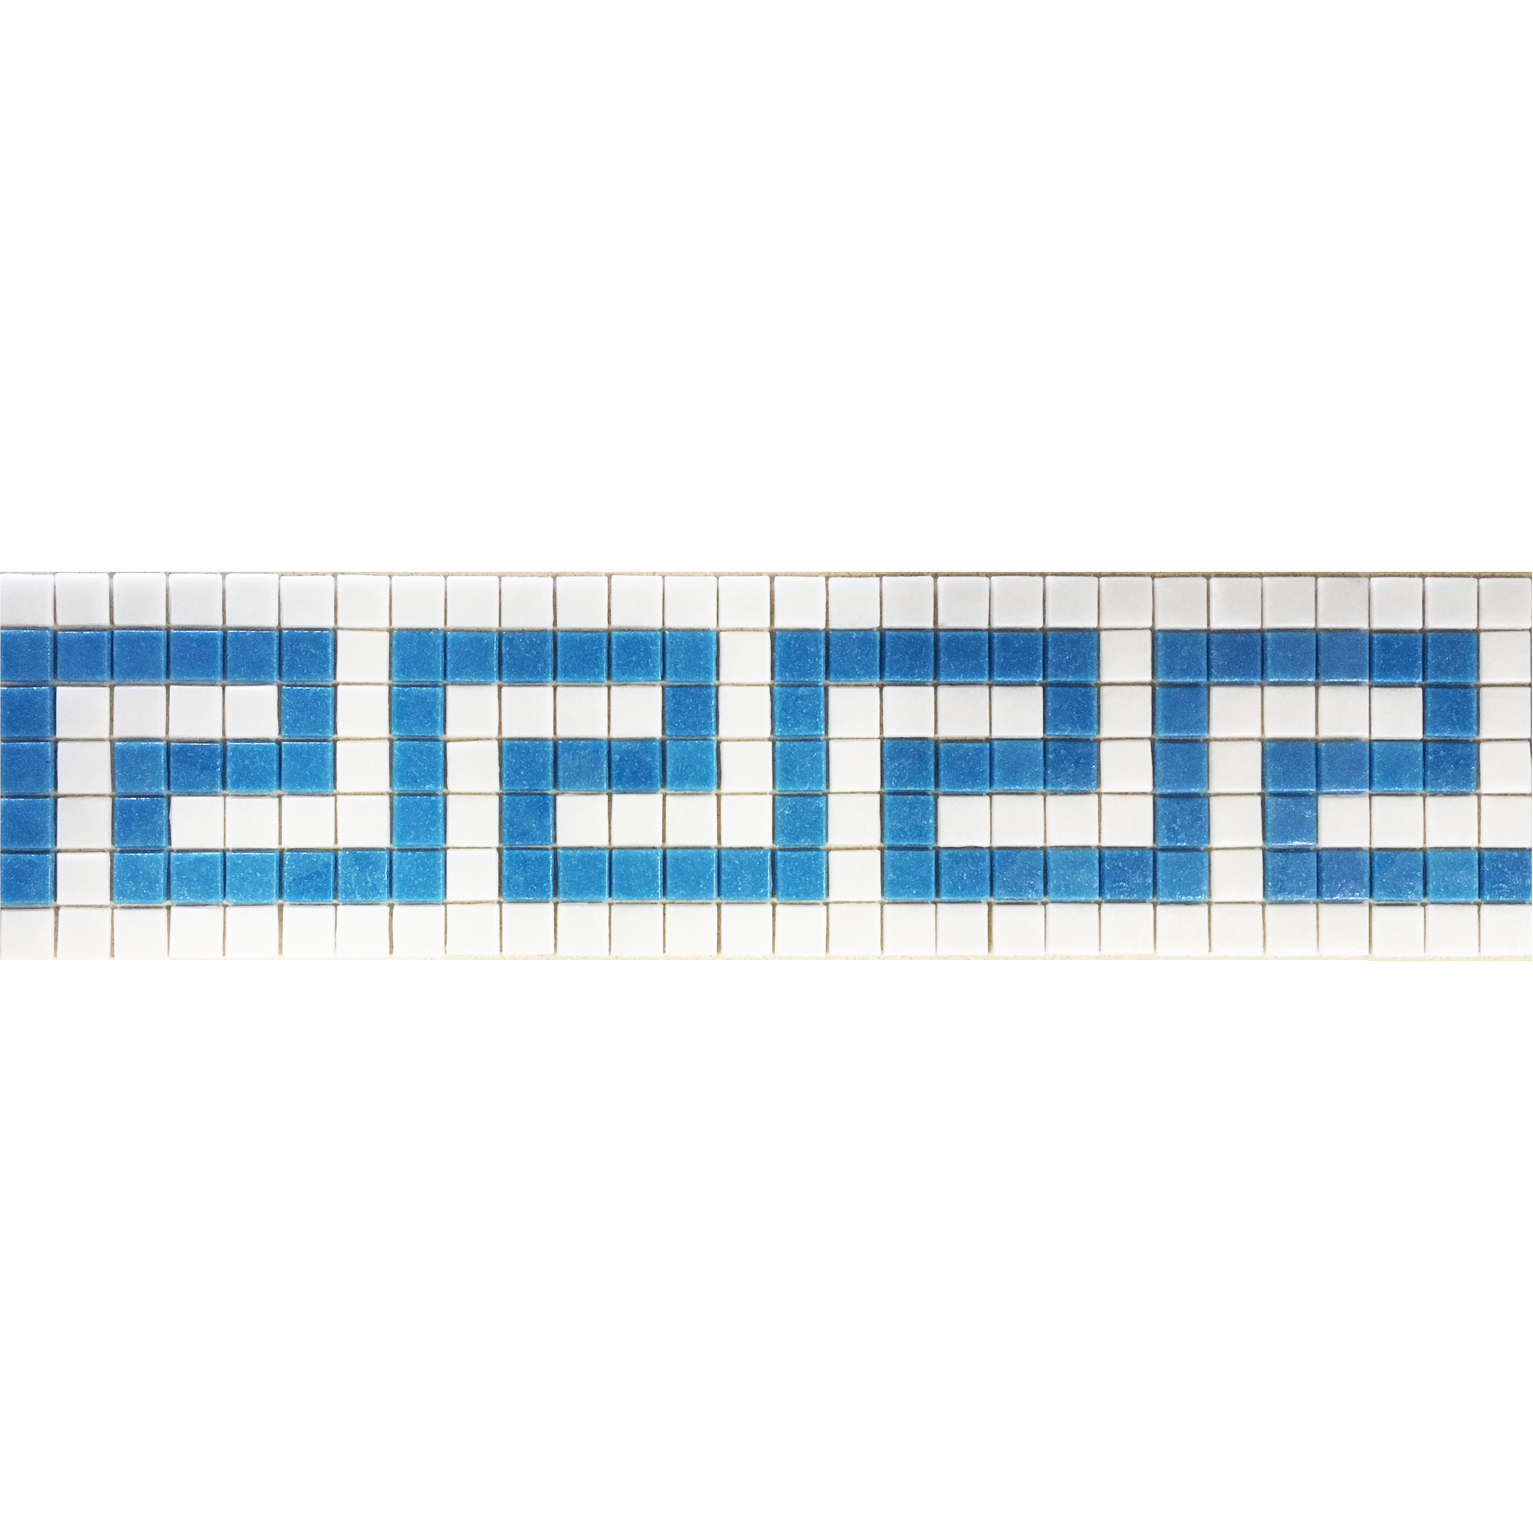 "Cancun 6 - Greek Key Glass Mosaic Waterline or Border 5.5"" High, 1 Lineal Foot"